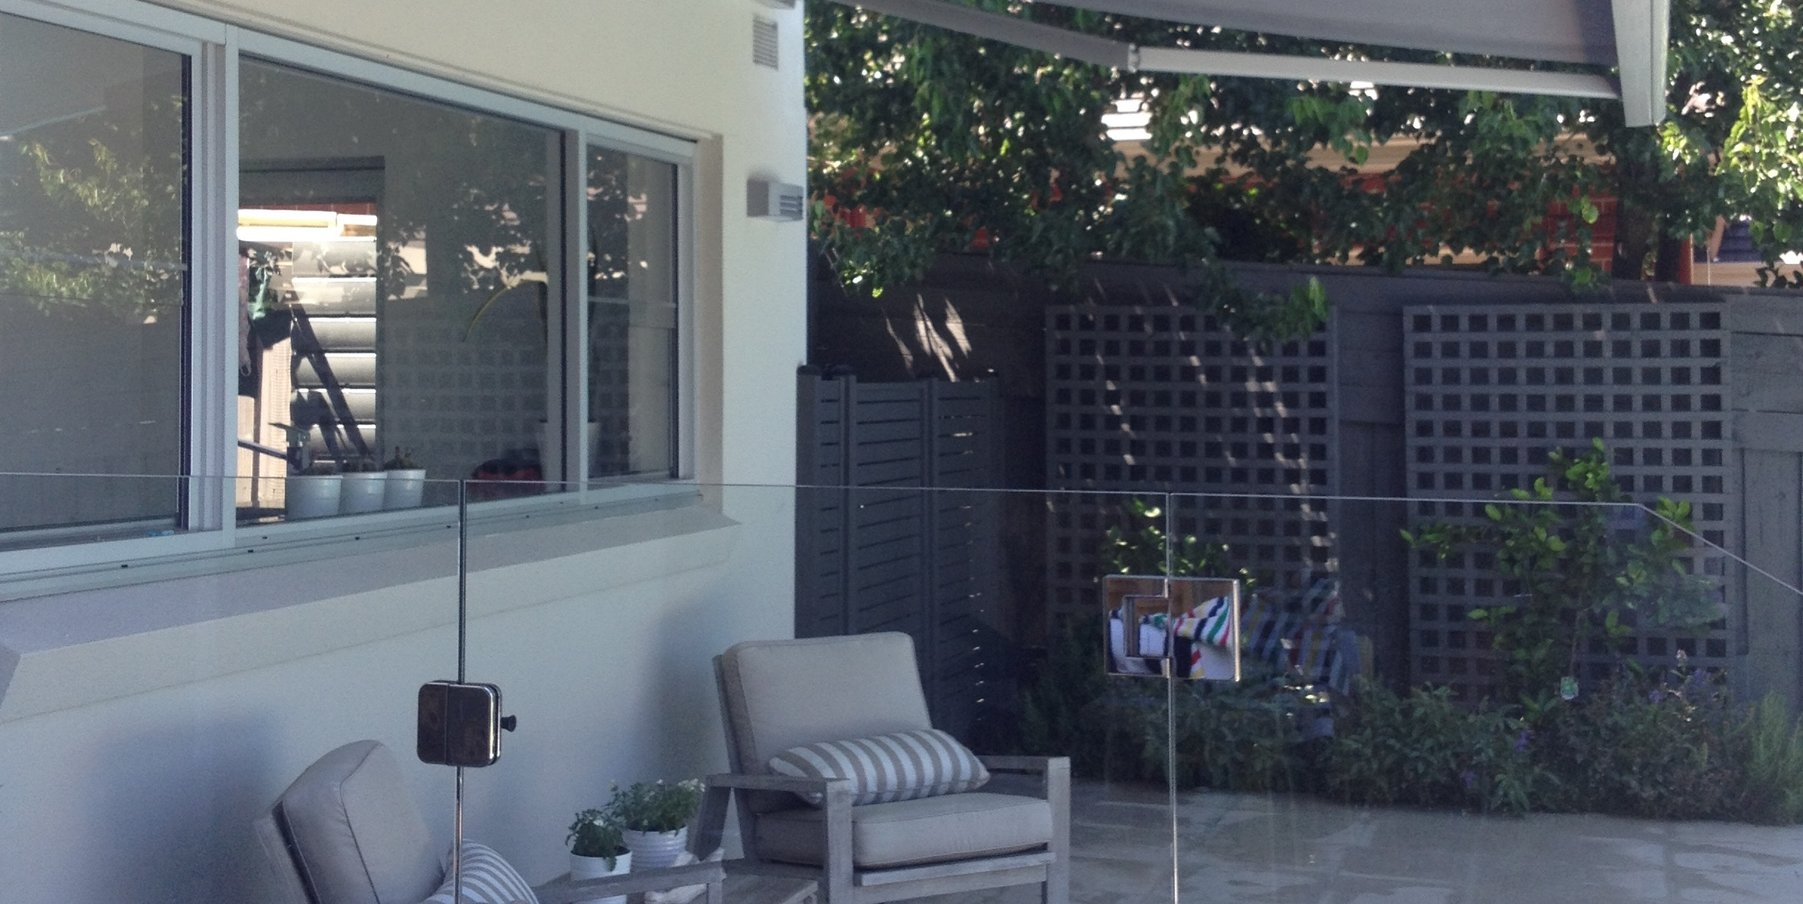 Awnings Melbourne | Folding Arm Retractable Awnings Melbourne - LWF